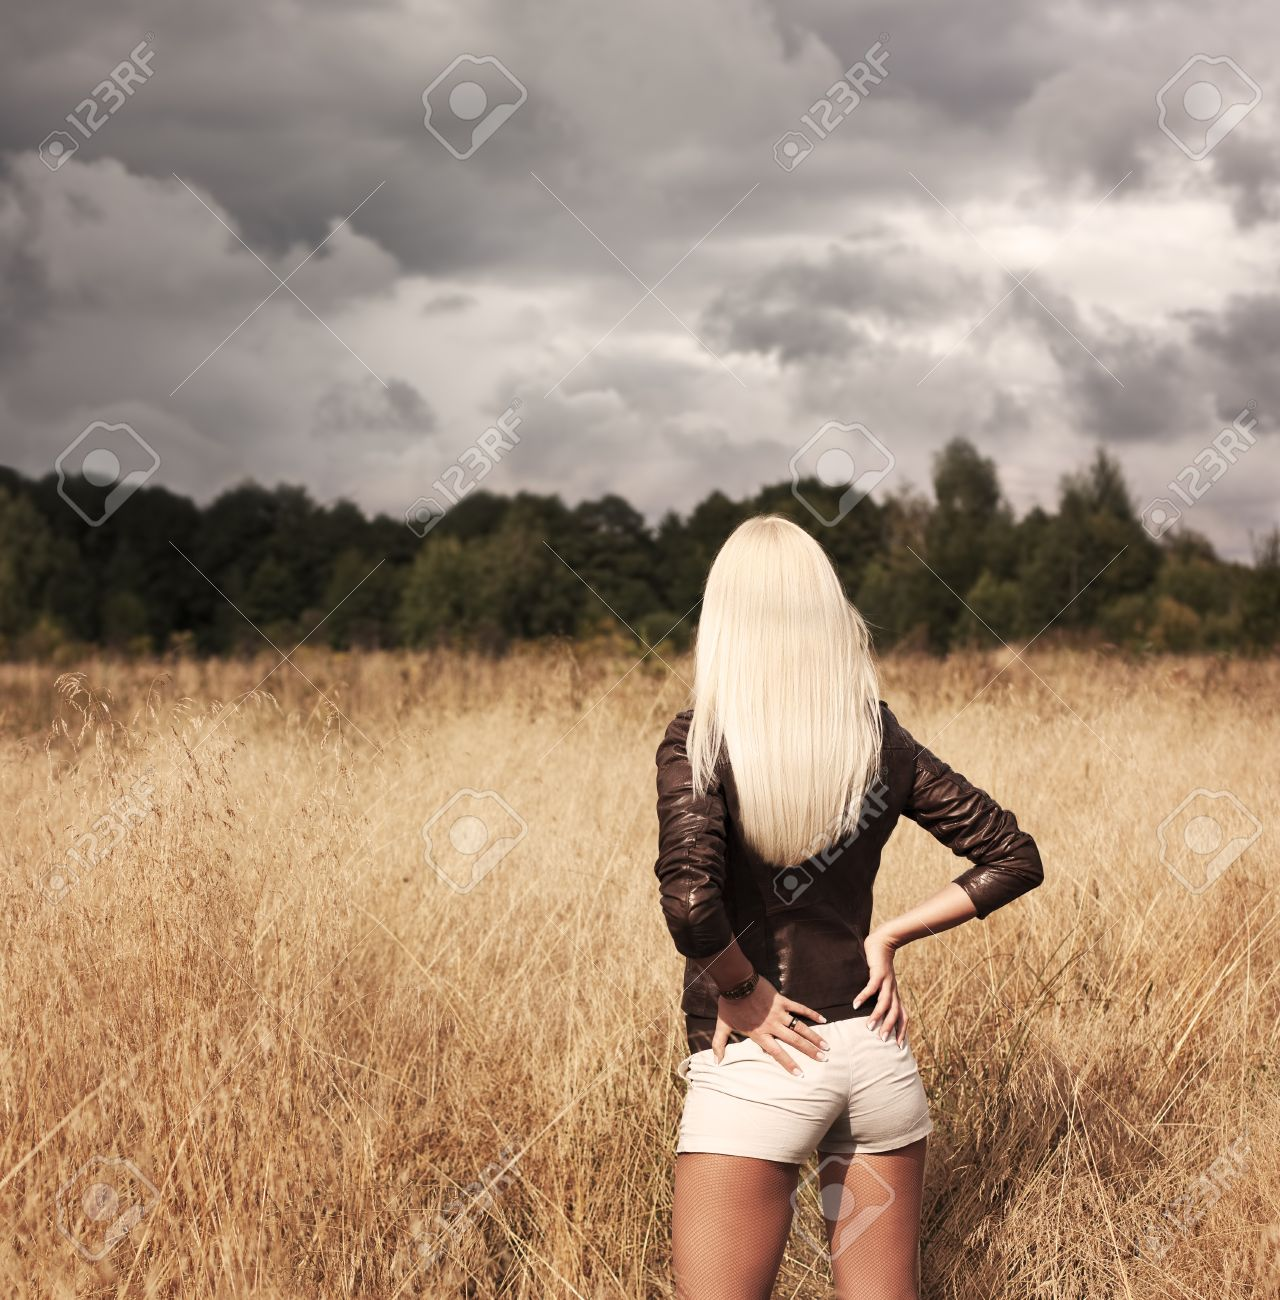 Sexy Blonde Woman Standing at the Field Stock Photo - 15147736